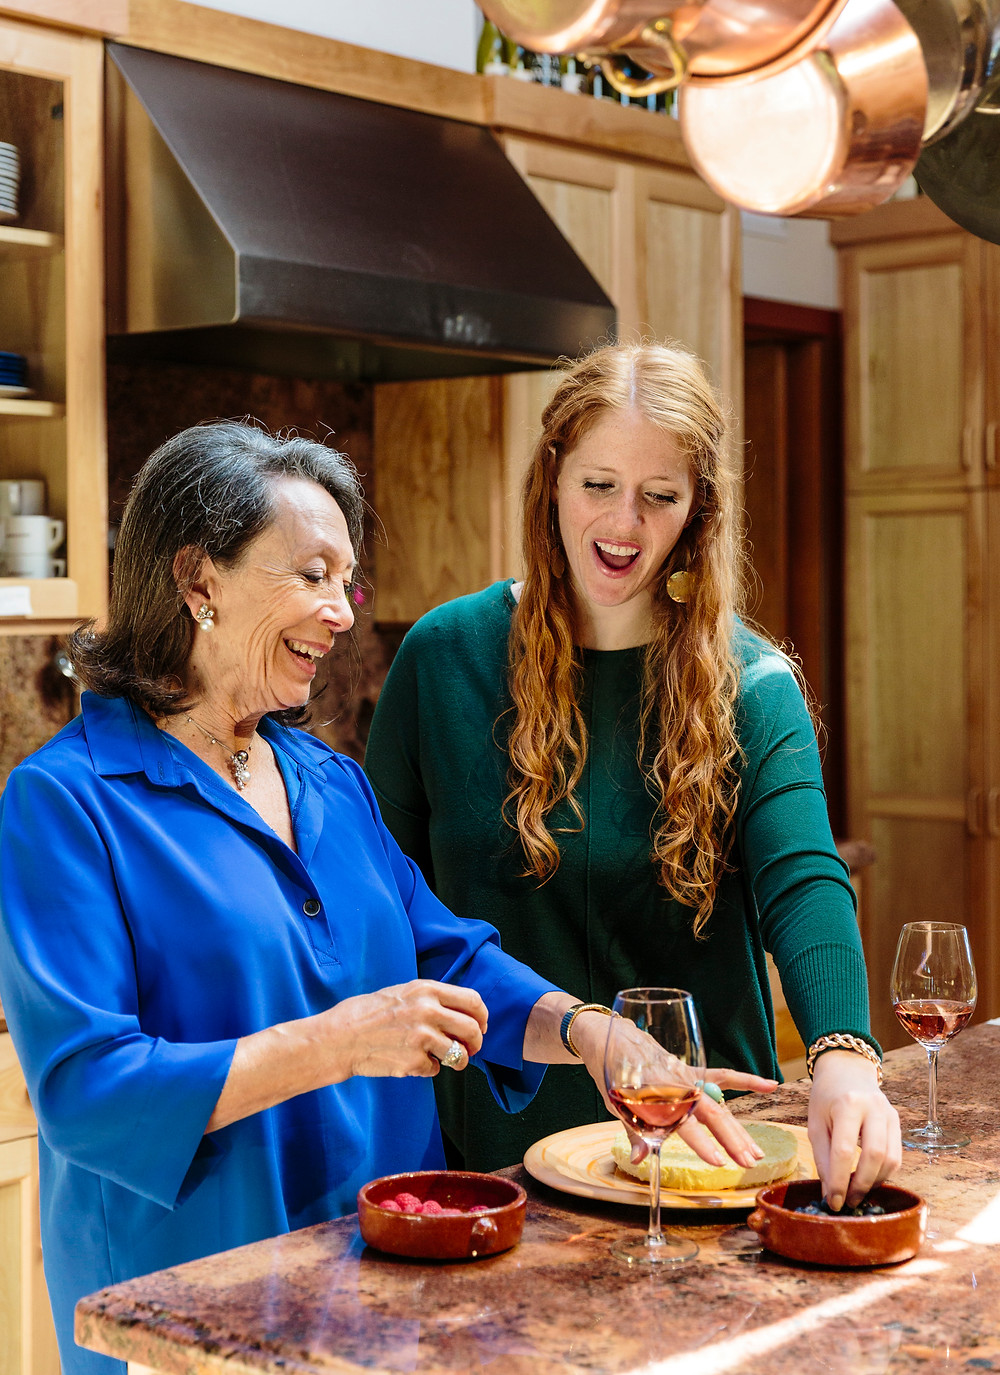 Marimar and Cristina Torres cooking together in their family kitchen in Sebastopol, California